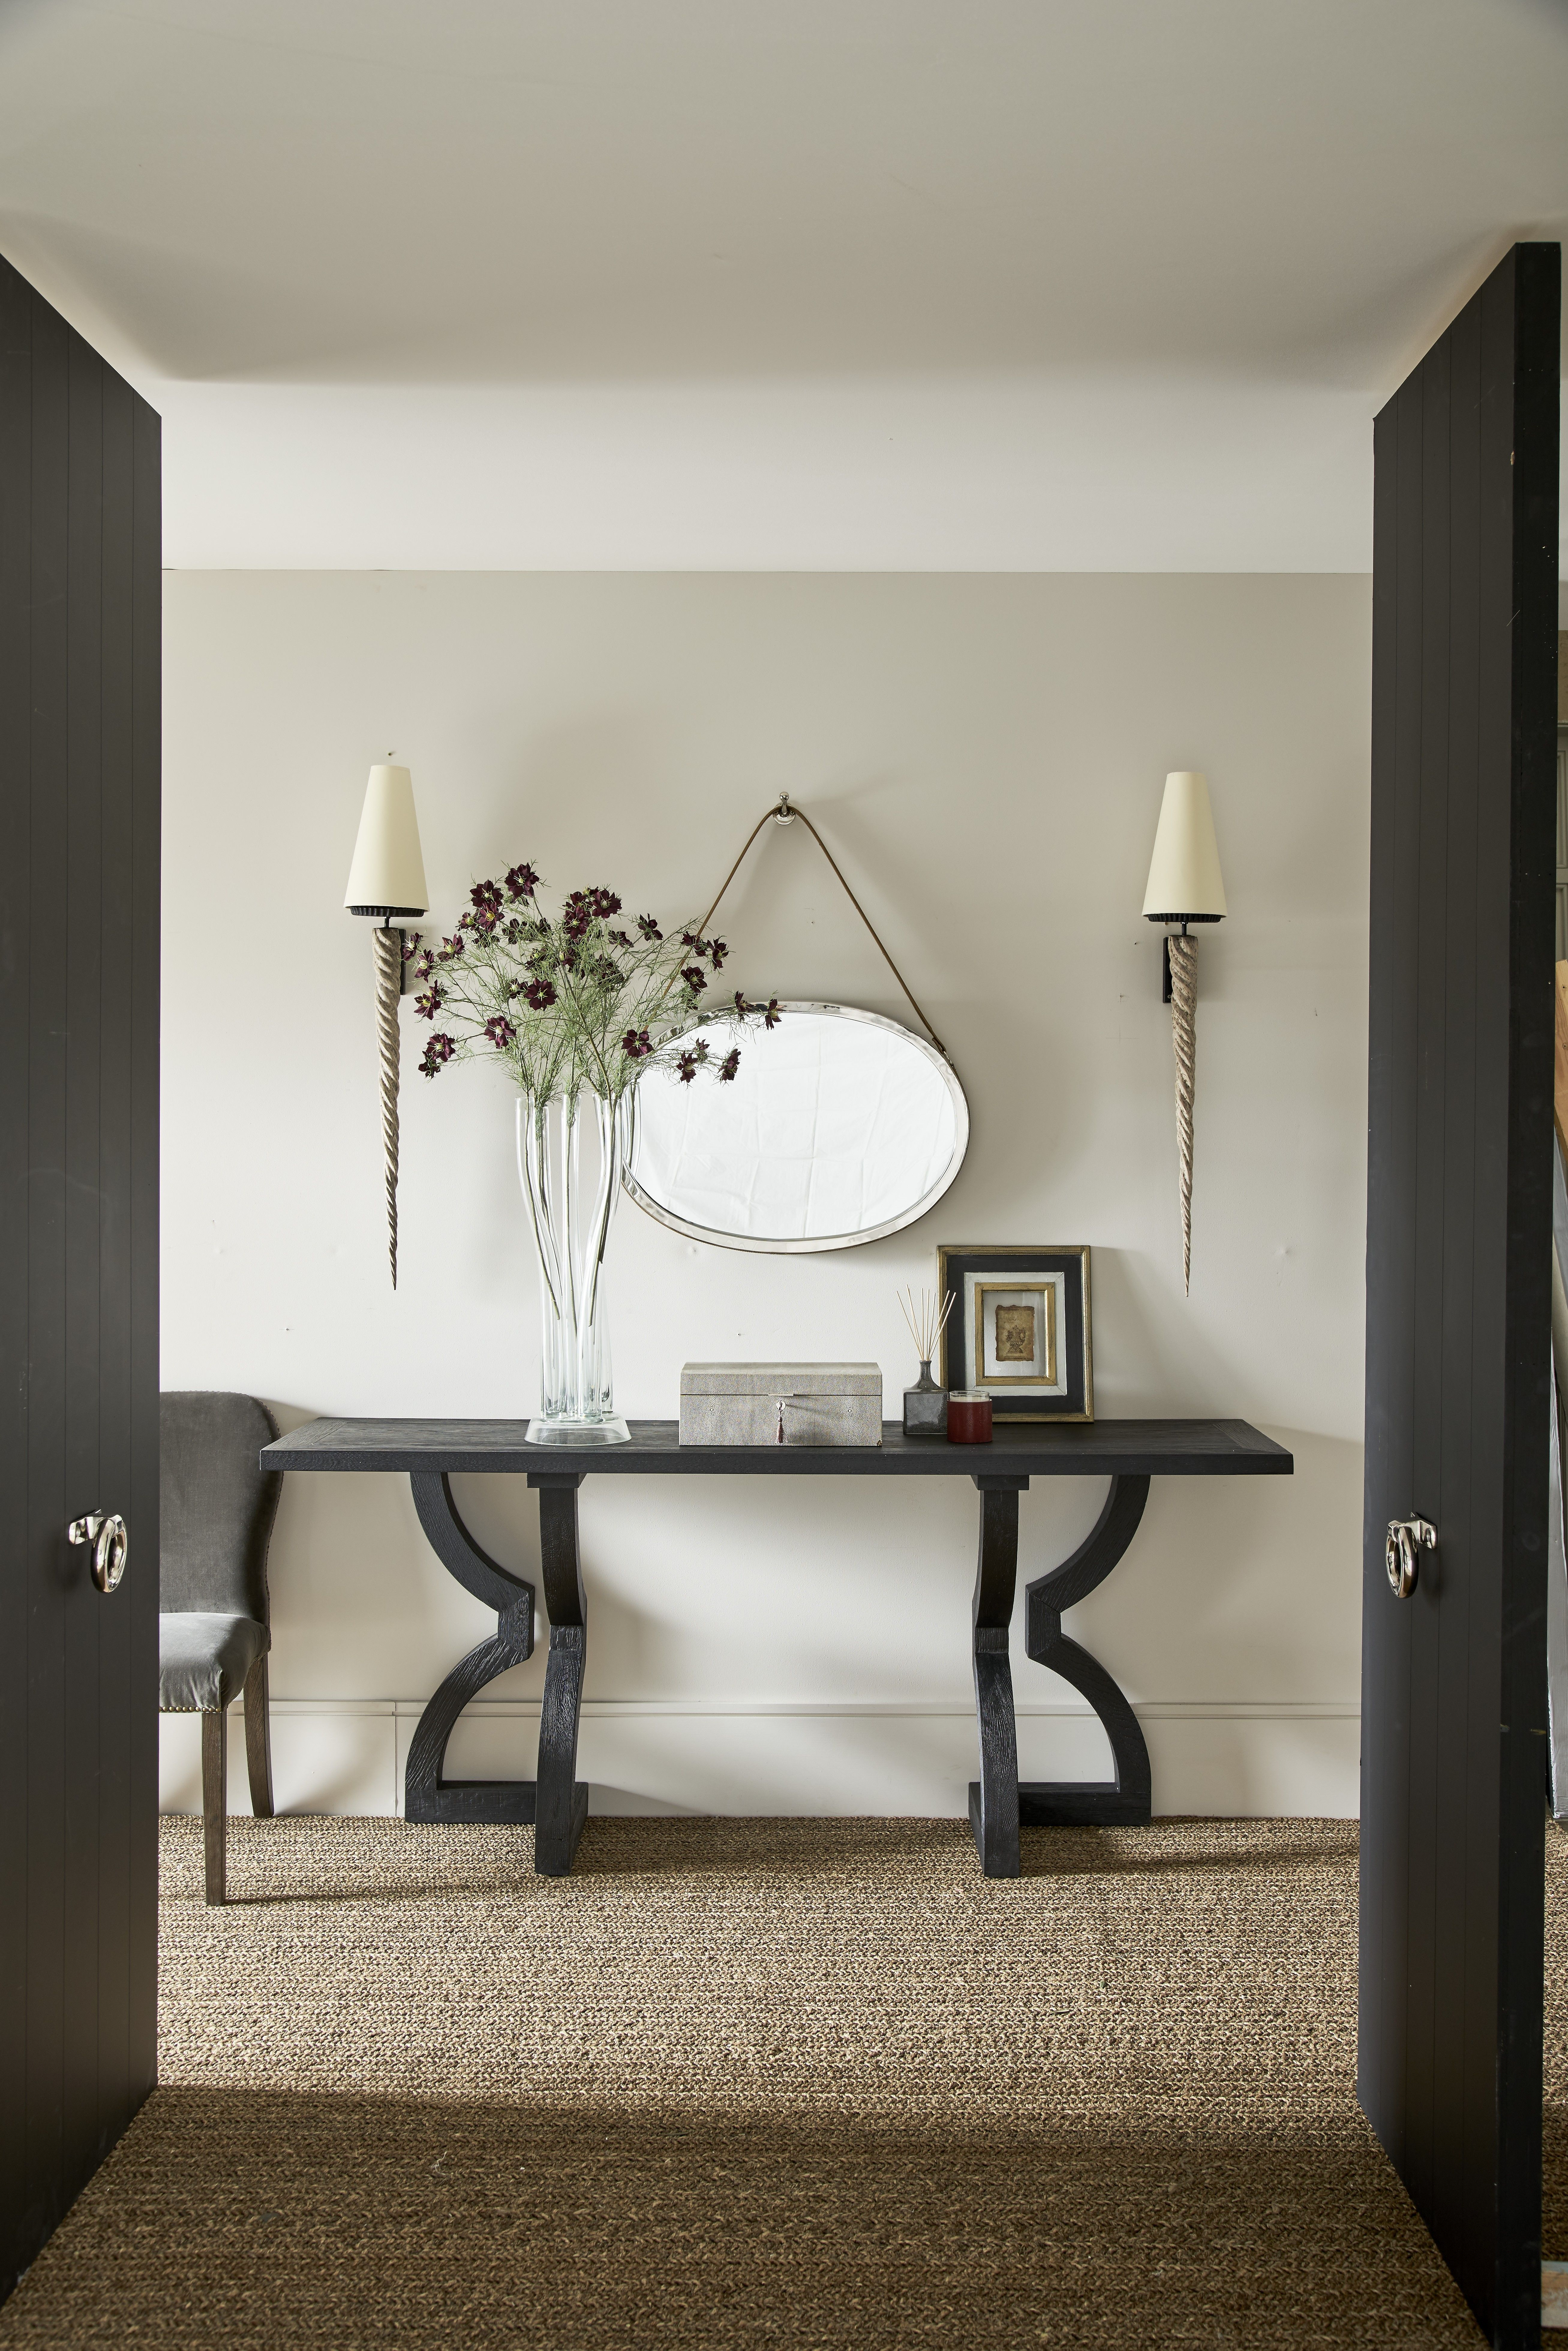 Hallway furniture with mirror  An unusually shaped theatrical console table that will add depth